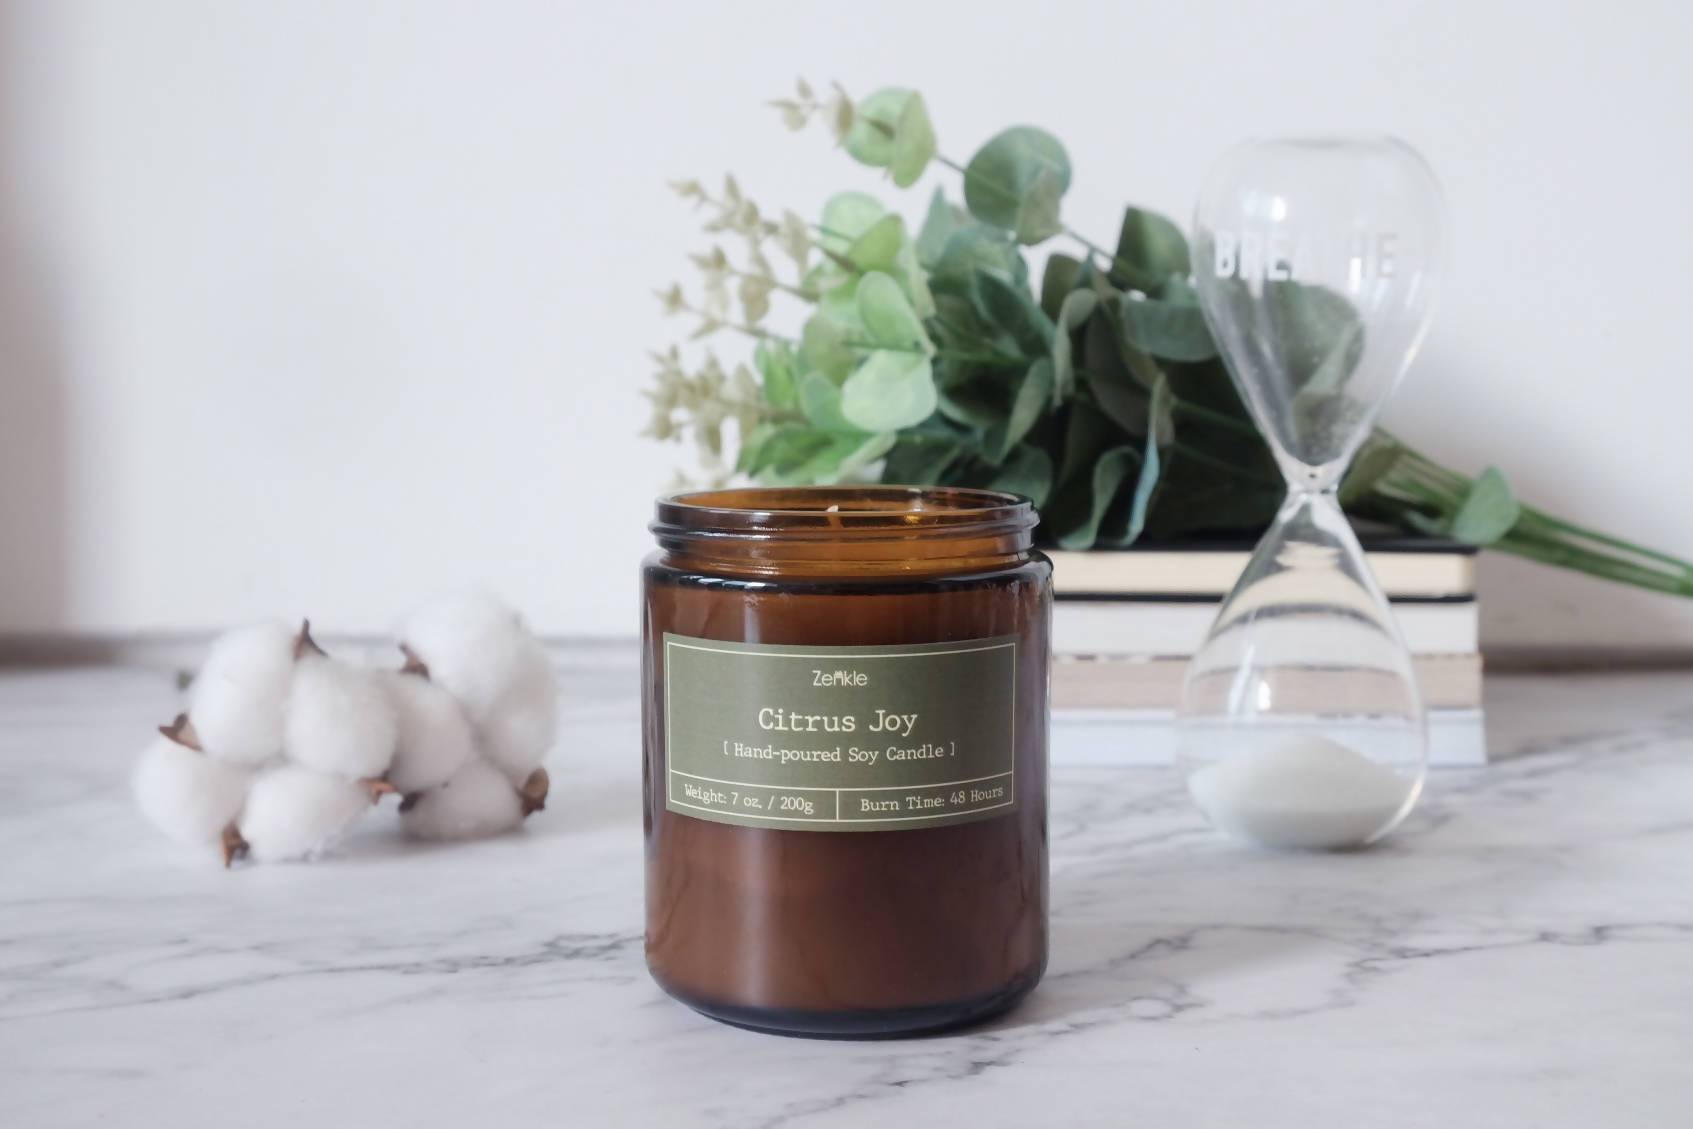 Citrus Joy Soy Candle - Scented Candles - Zenkle - Naiise